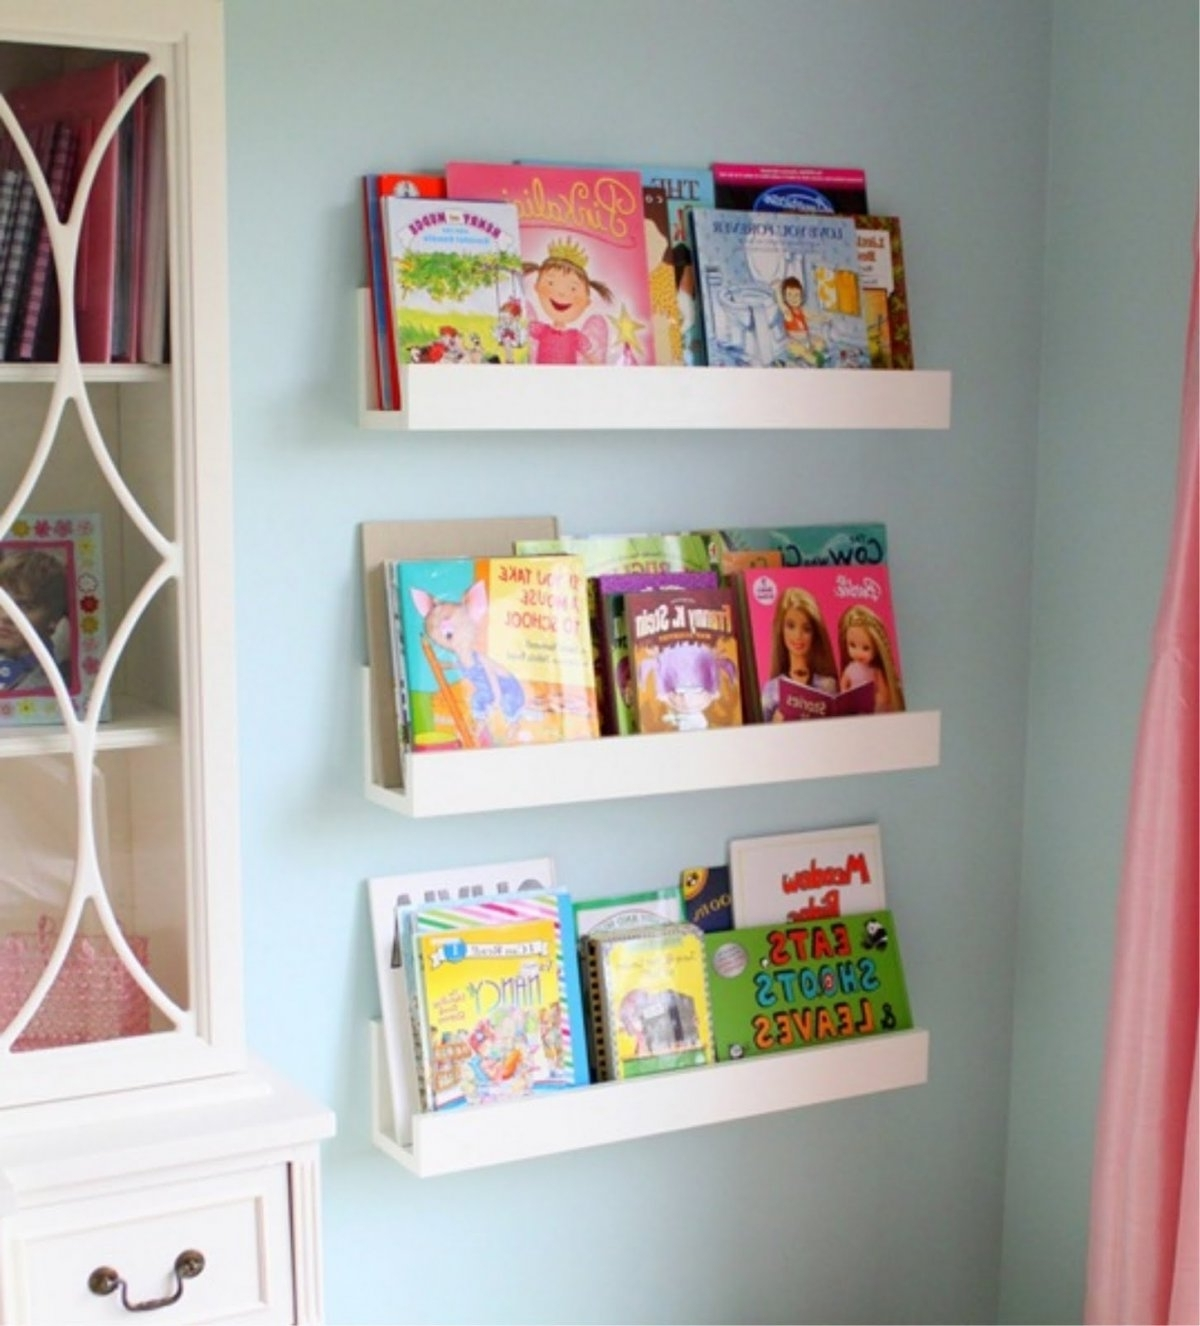 Bookcases For Kids Room For Most Popular Wall Shelves Design: White Wall Shelves For Kids Room Design White (View 5 of 15)